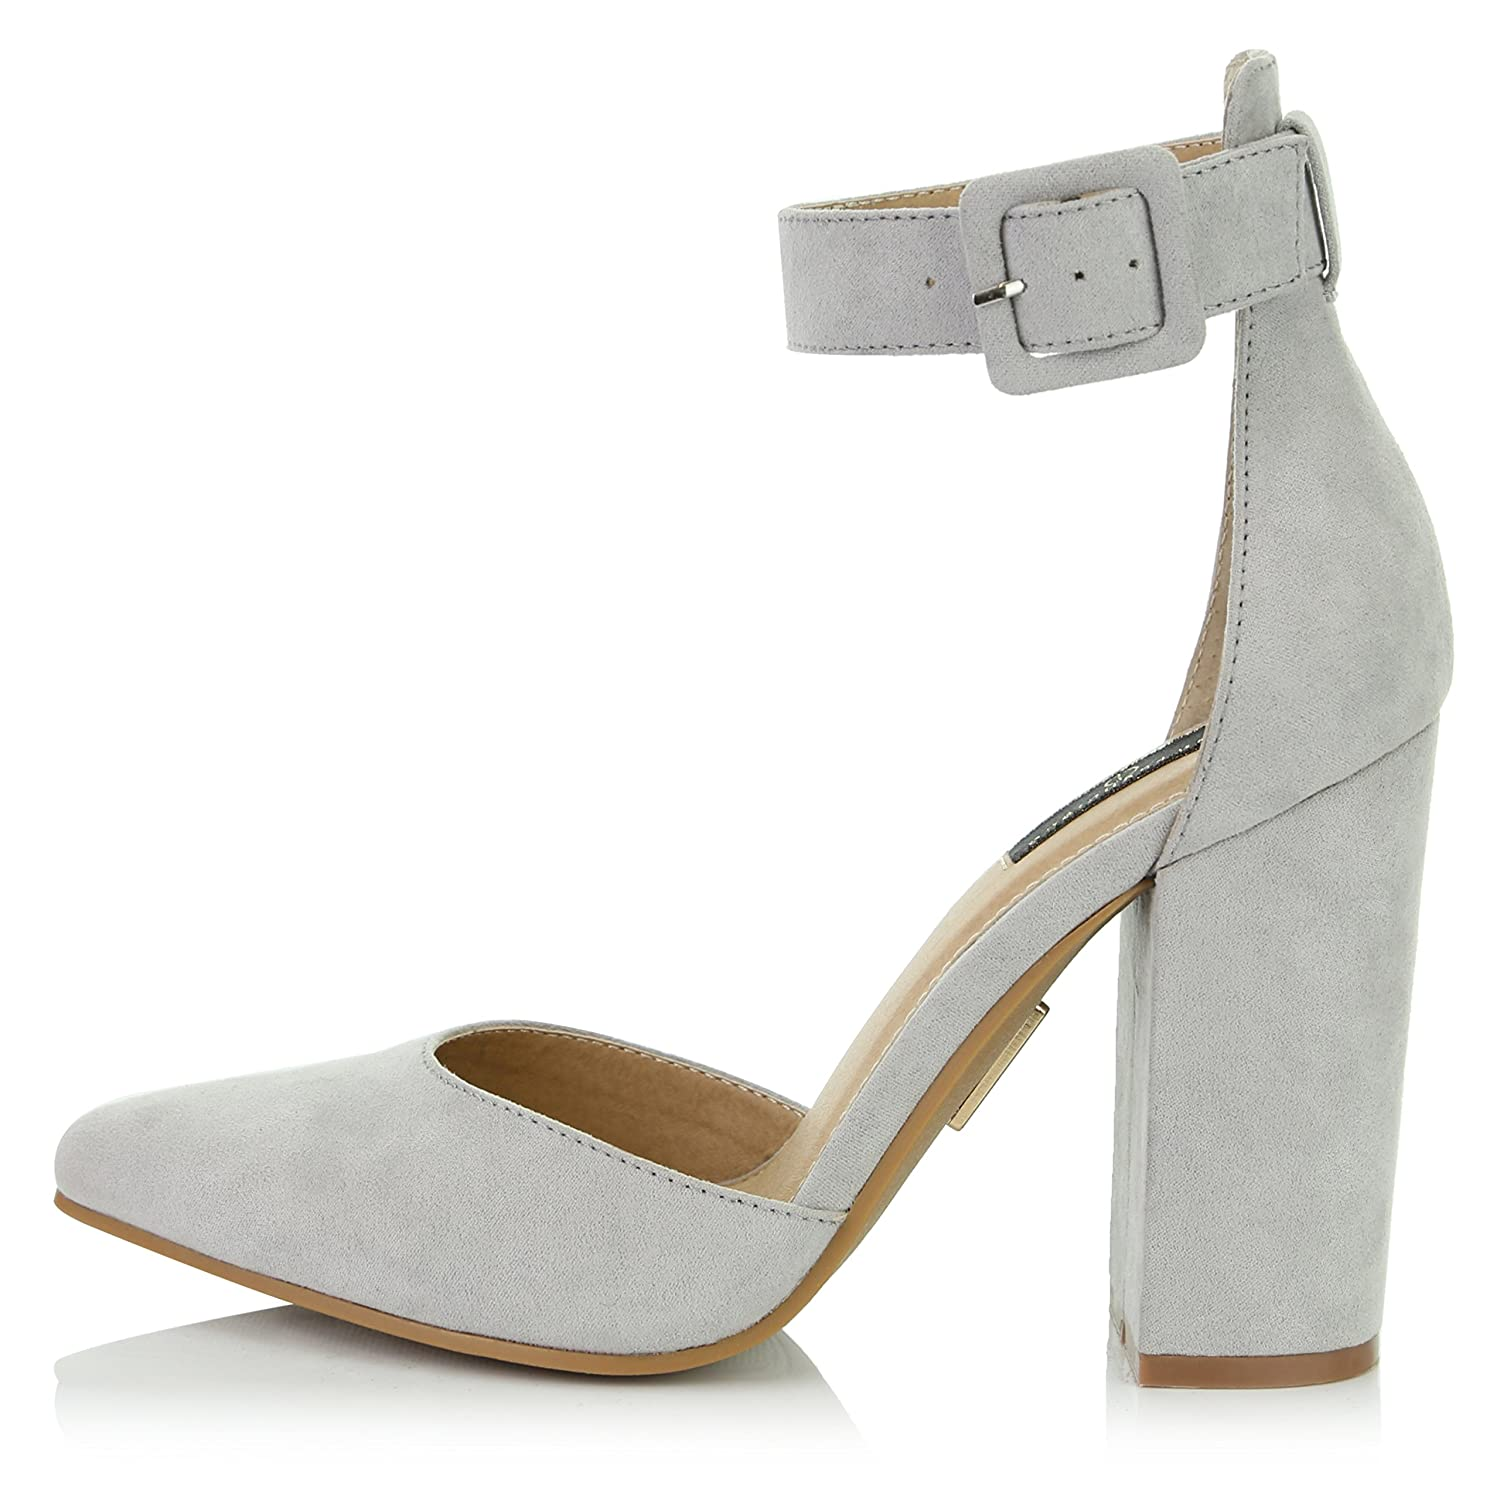 8ce7af9bdf6910 DailyShoes Women s Fashion Pointed Toe Chunky Ankle Strap Buckle High Heels  Shoes  1540998288-227119  -  20.01